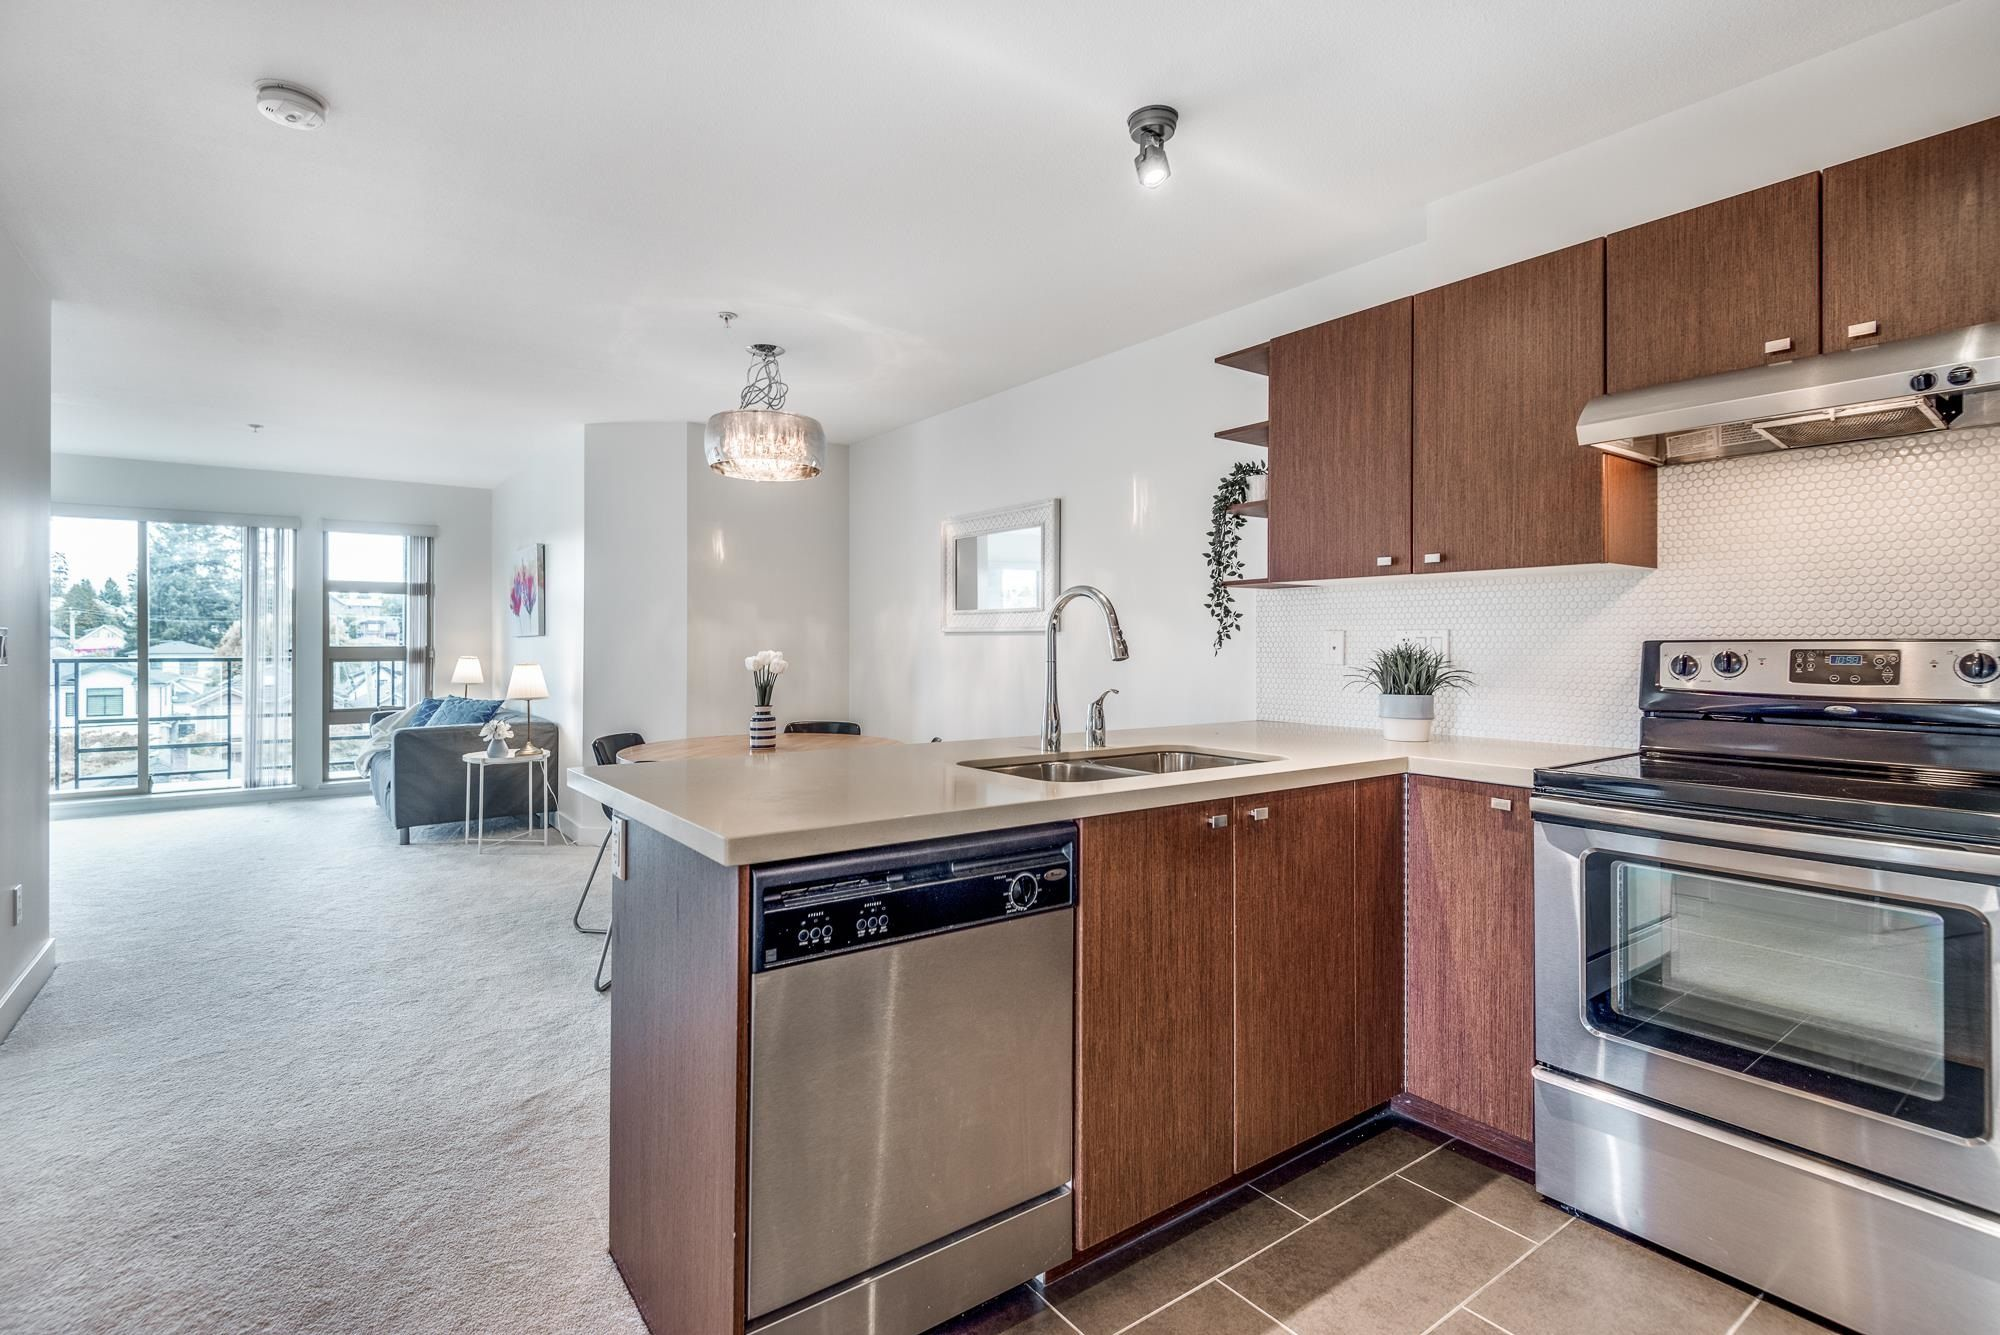 Main Photo: 315 738 E 29TH AVENUE in Vancouver: Fraser VE Condo for sale (Vancouver East)  : MLS®# R2617306